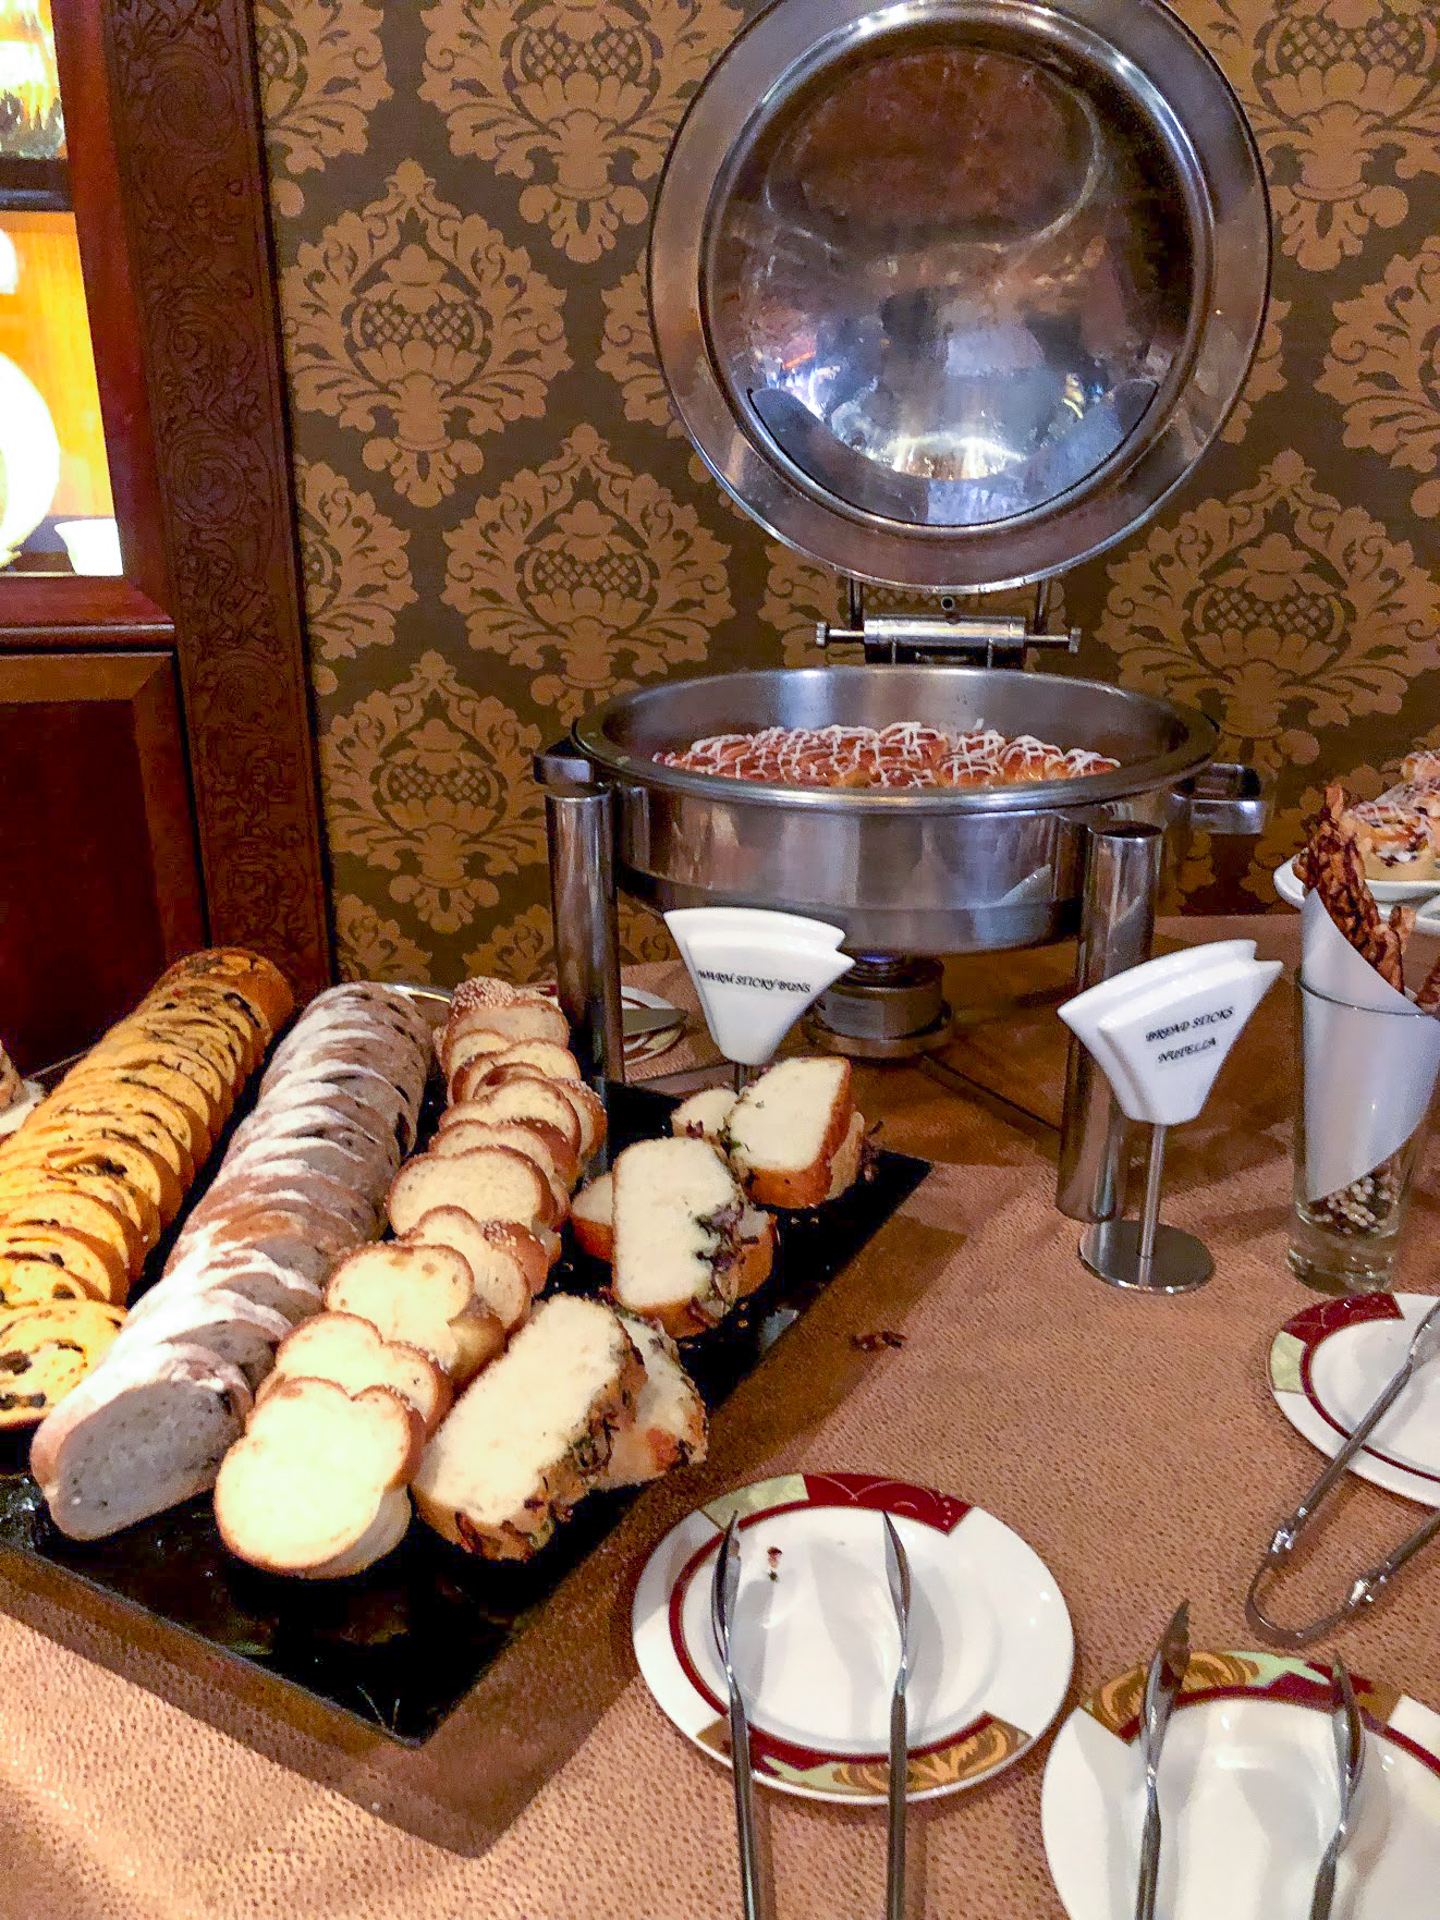 Breakfast pastries at the Palo Brunch buffet on the Disney Dream